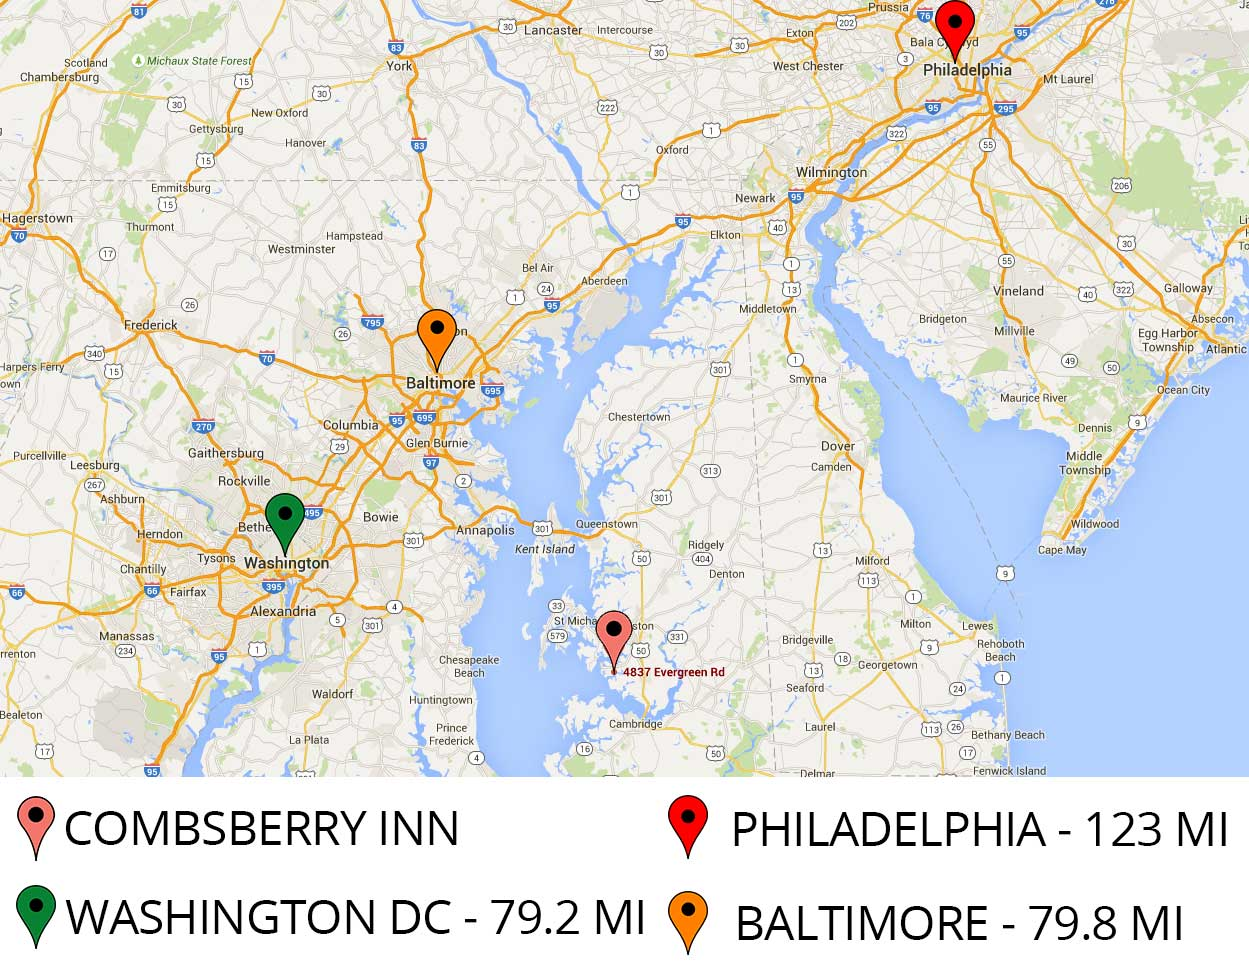 Combsberry Inn is close to Philadelphia, Washington DC, and Baltimore